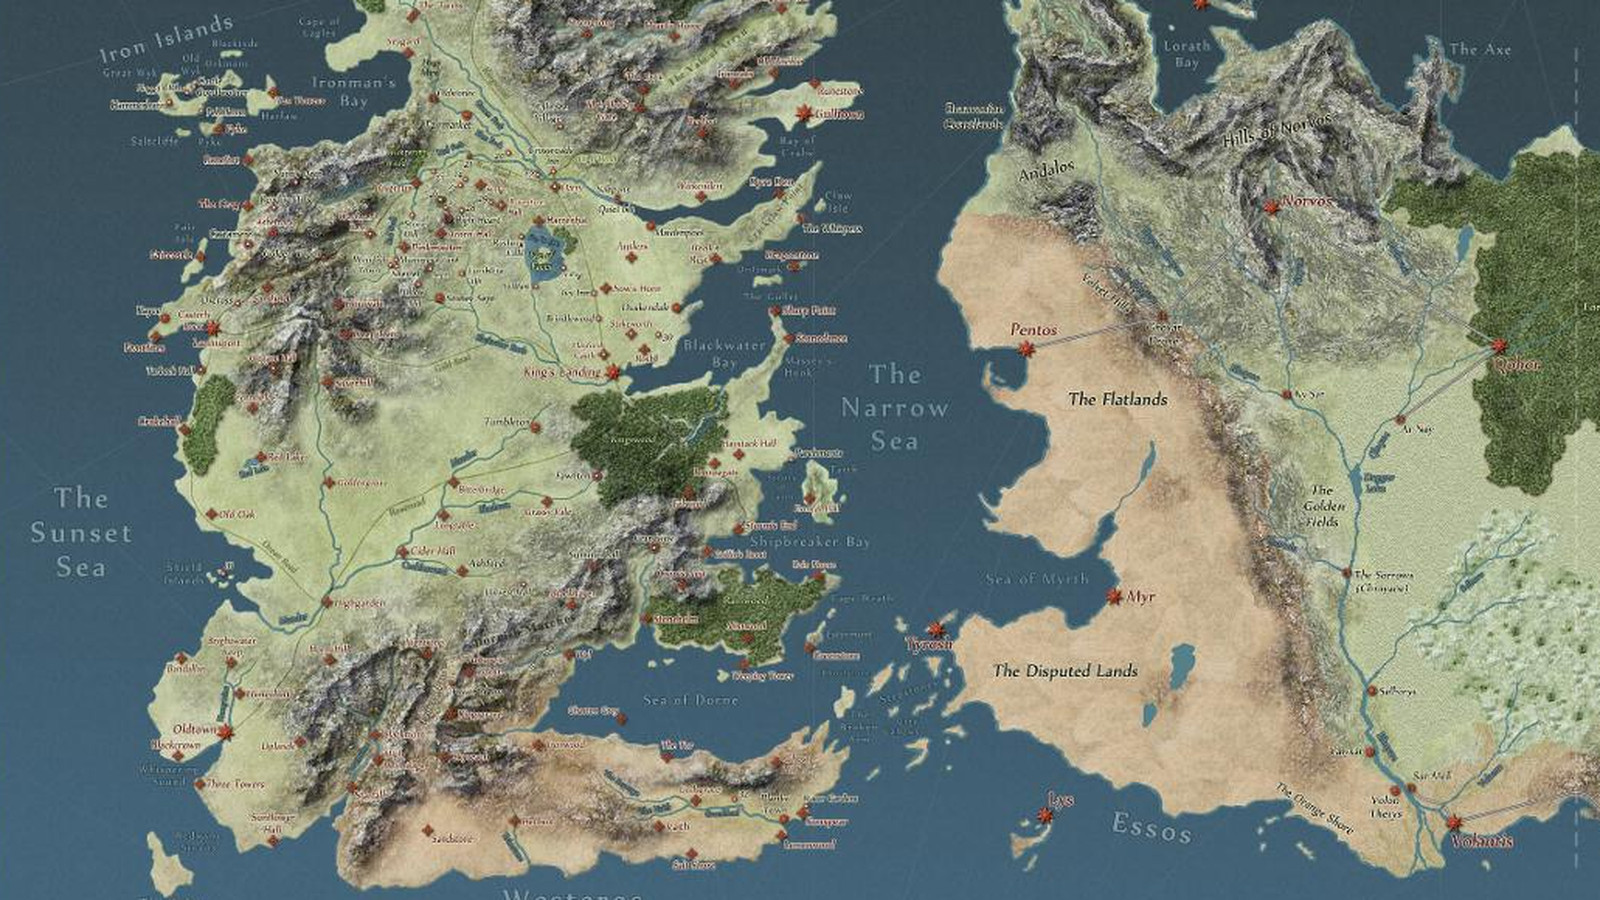 interactive game of thrones map will make you an expert on westeros polygon. interactive game of thrones map will make you an expert on